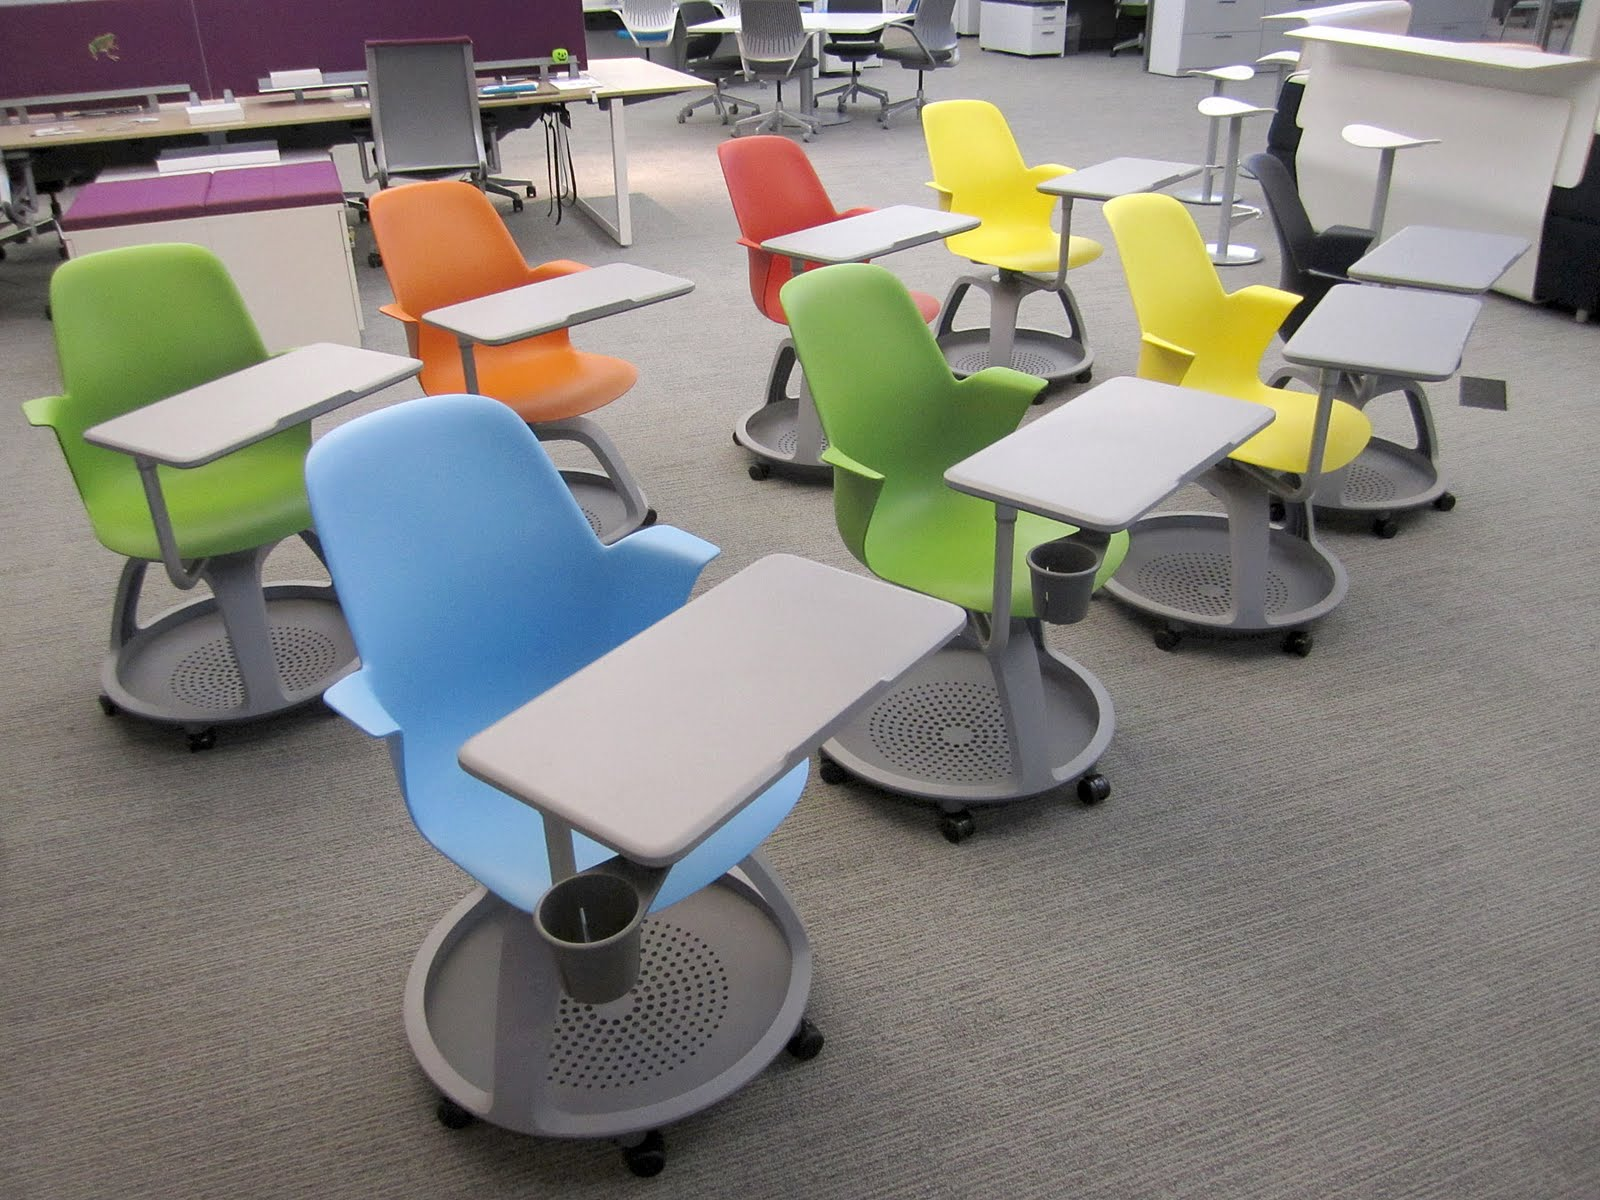 Innovative Classroom Desks ~ The learning space spaces by design